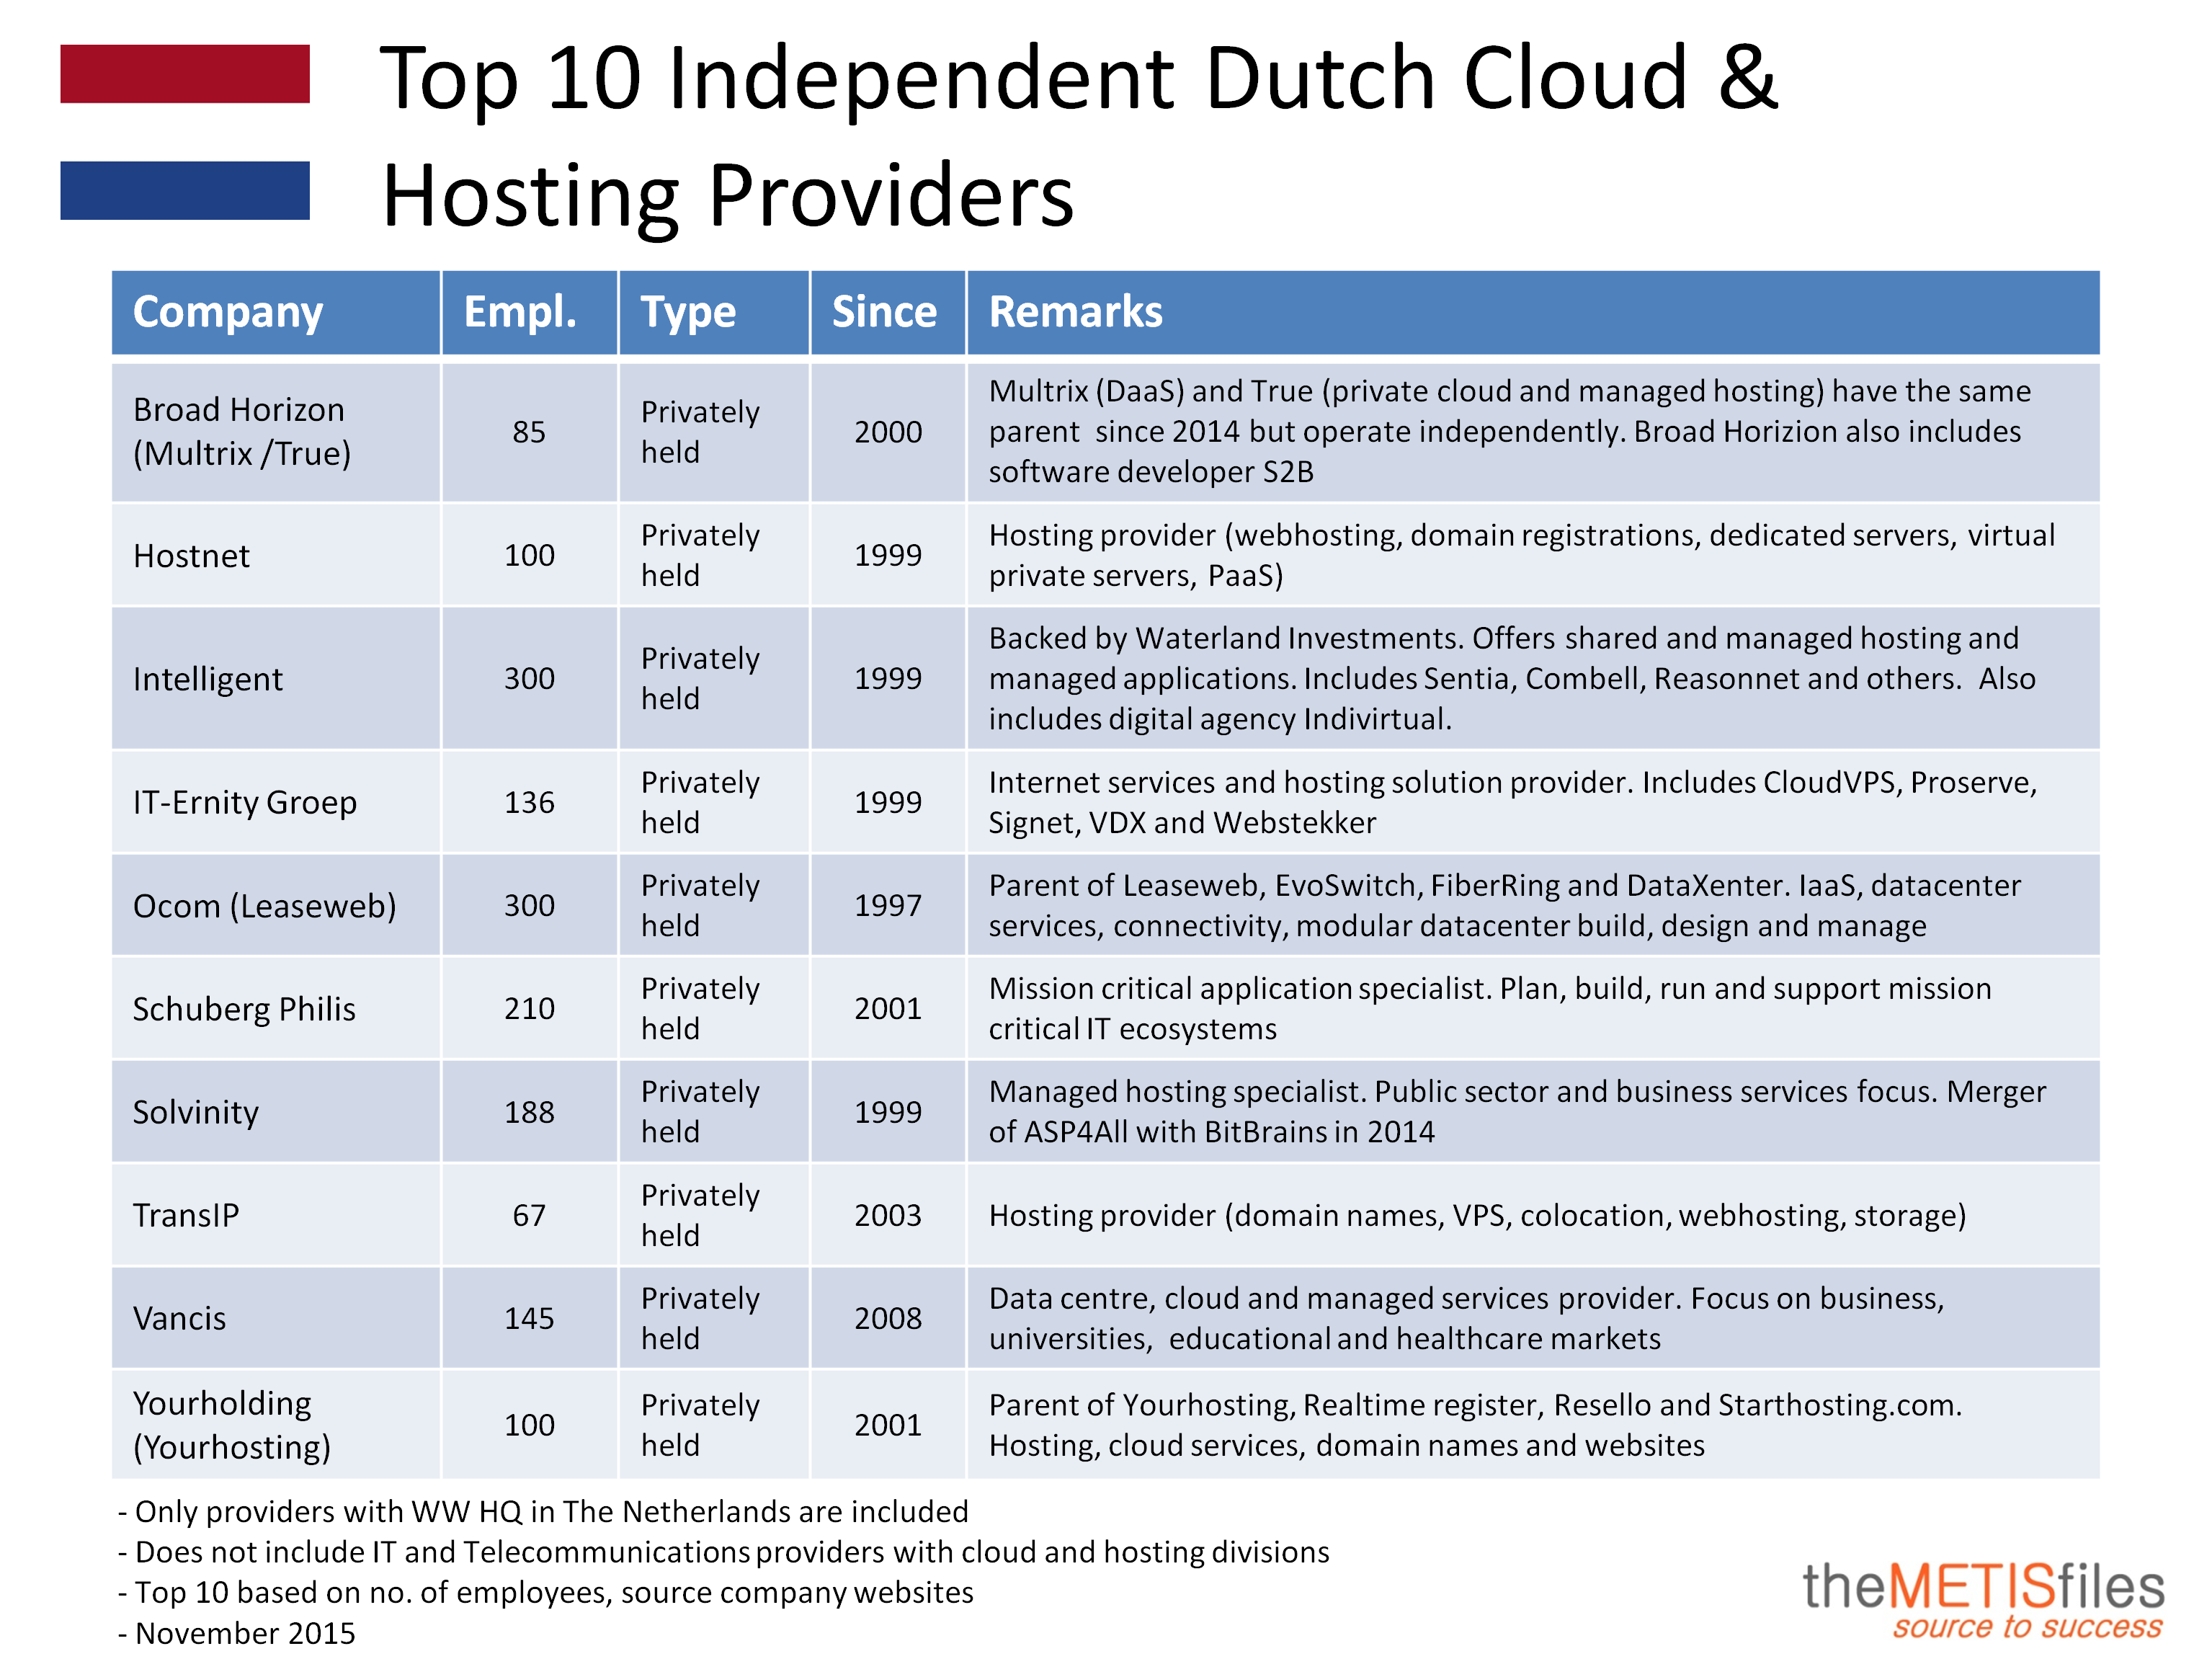 Top 10 Independent Dutch Cloud and Hosting Providers